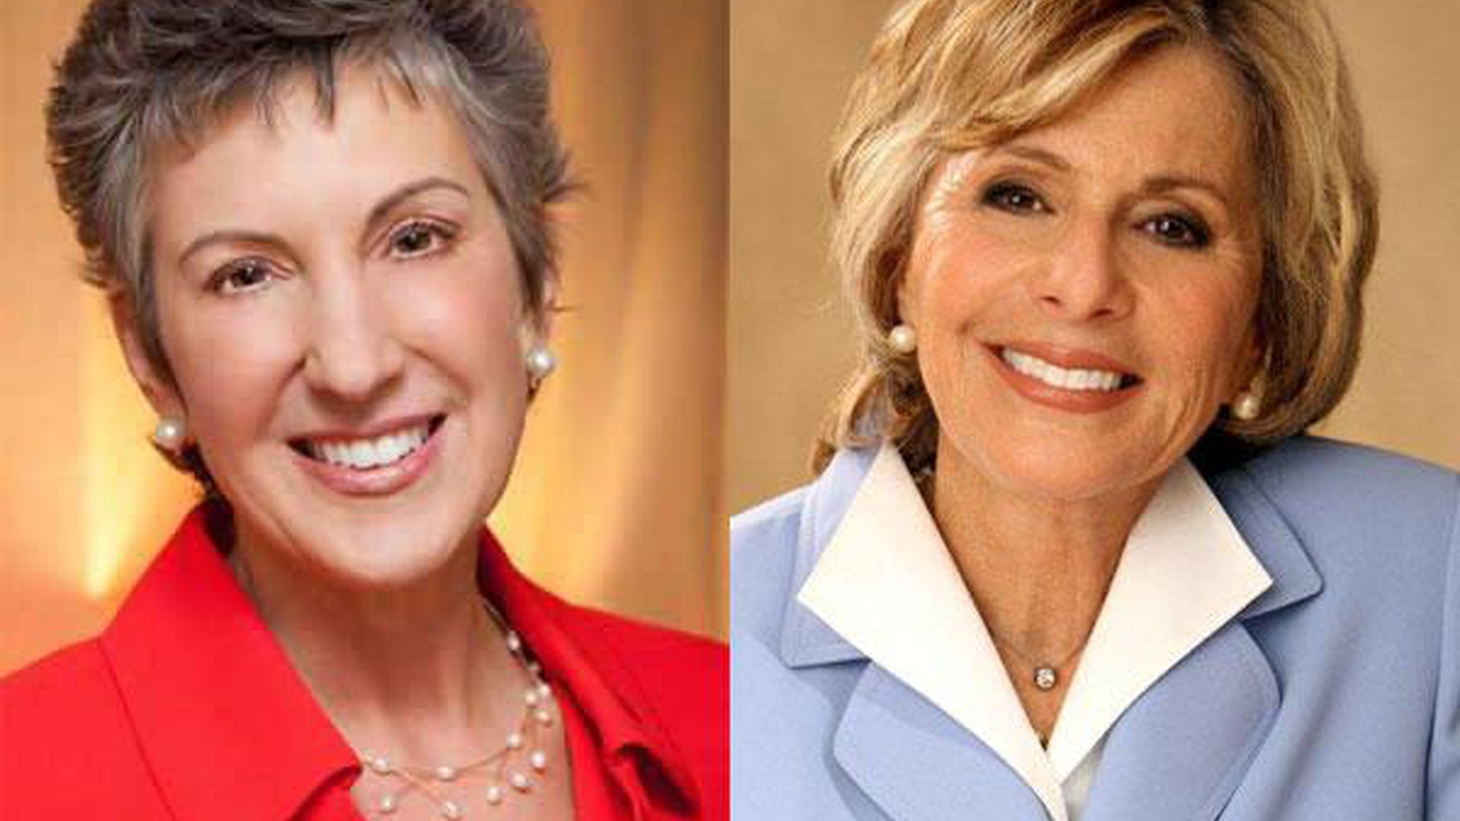 Tonight at 7 pm, KCRW will carry a live debate between incumbent Democratic US Senator Barbara Boxer and her Republican challenger, Carly Fiorina. It's the first time the candidates are debating one another and will be broadcast live from Mt. St. Mary's College in Moraga, California. (Pre-empts Which Way, LA?)